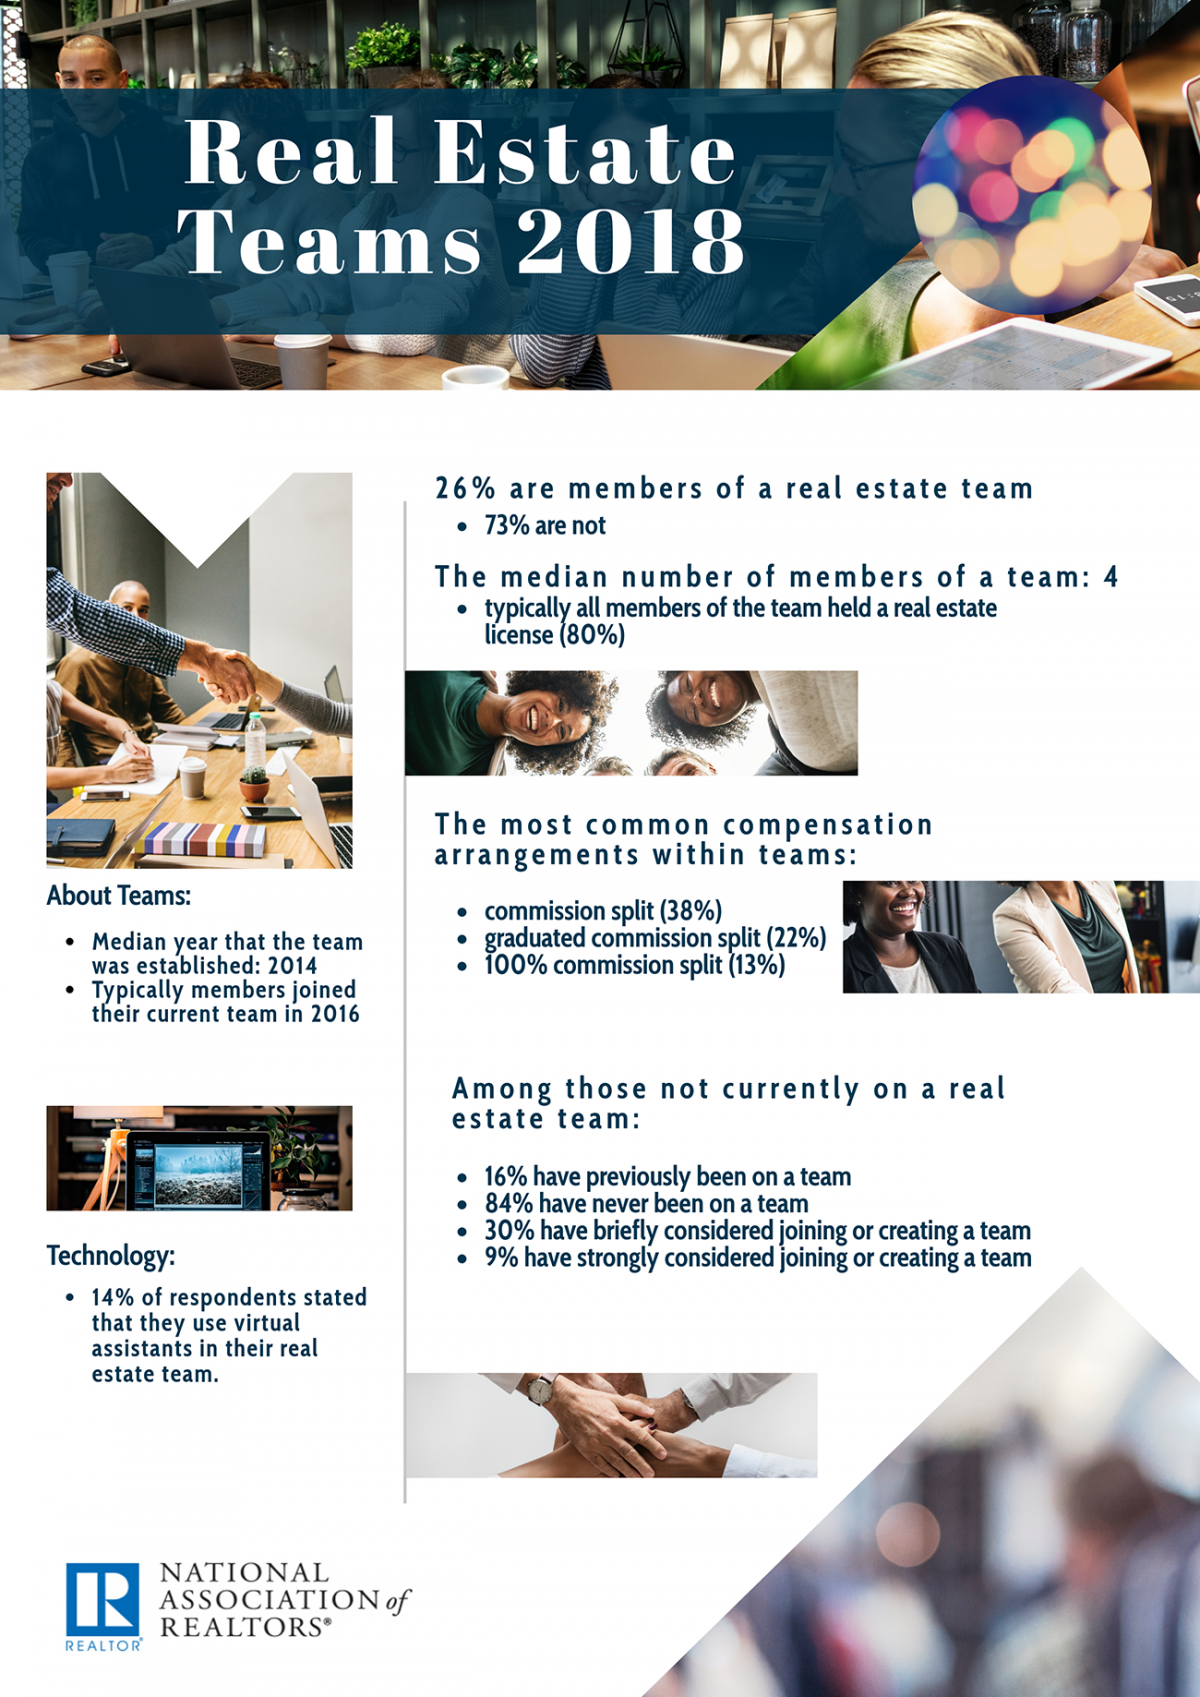 2018 real estate teams infographic 10 16 2018 1300w 1838h